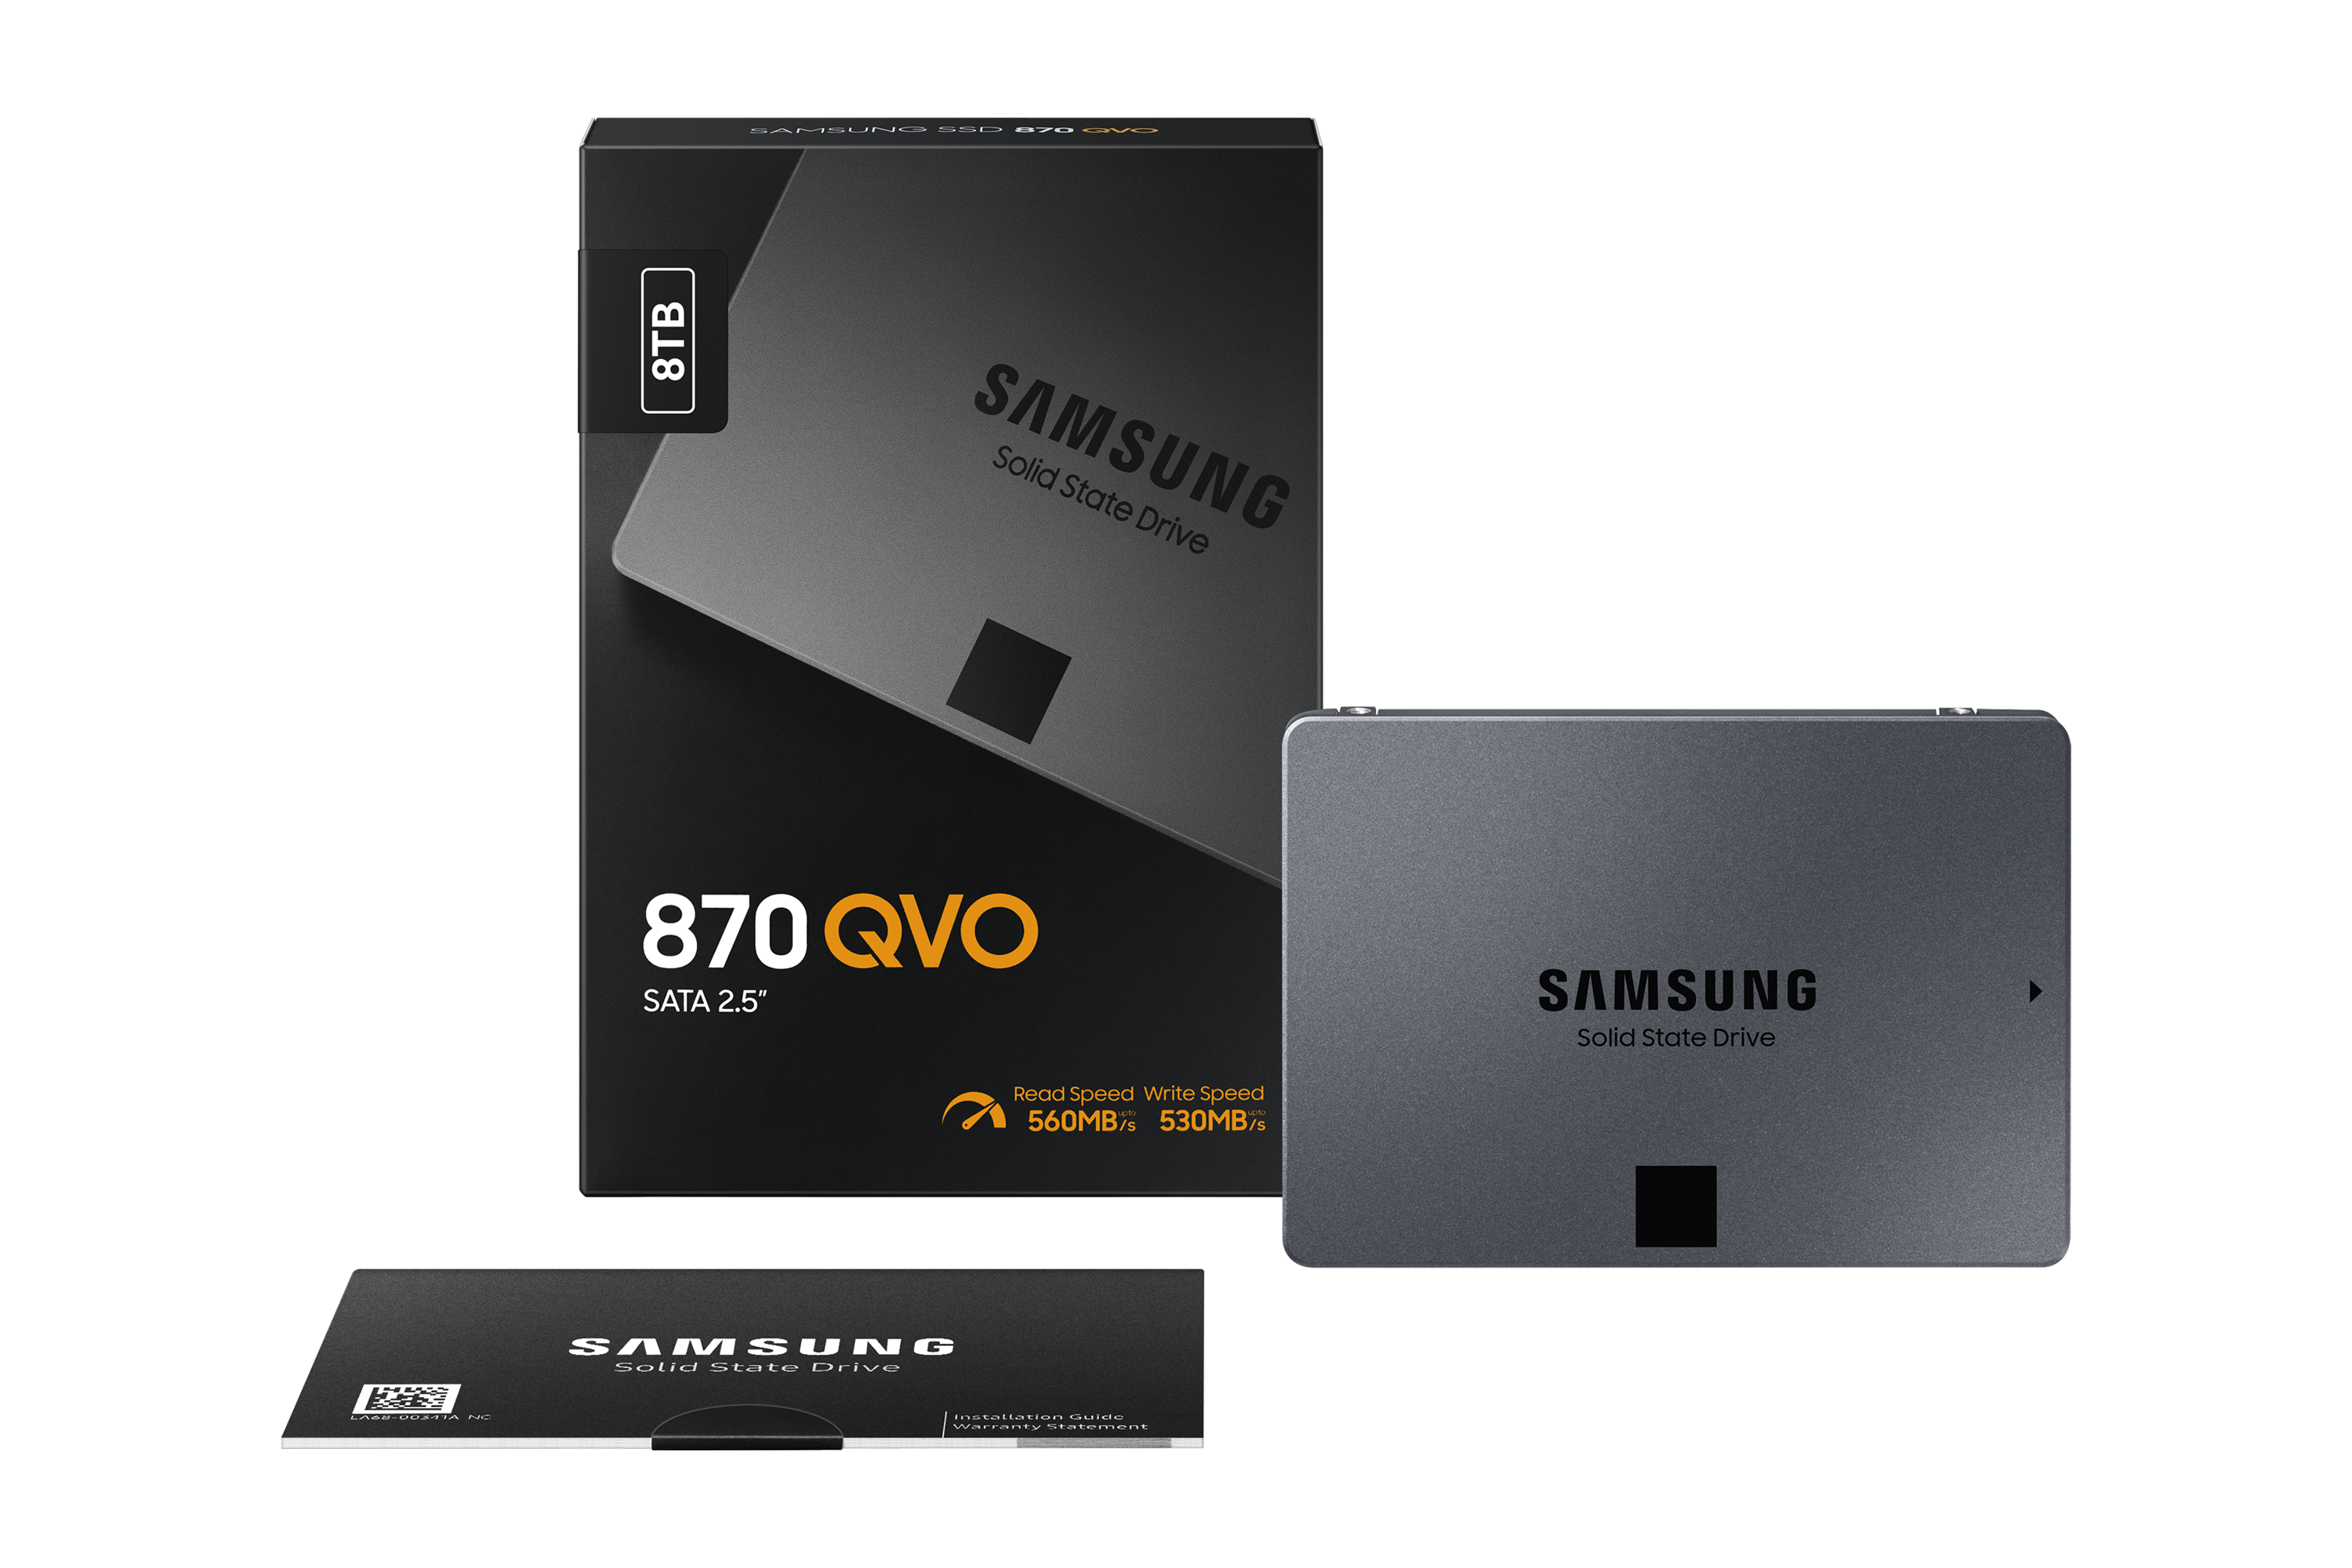 Samsung 870 QVO SSD next to box